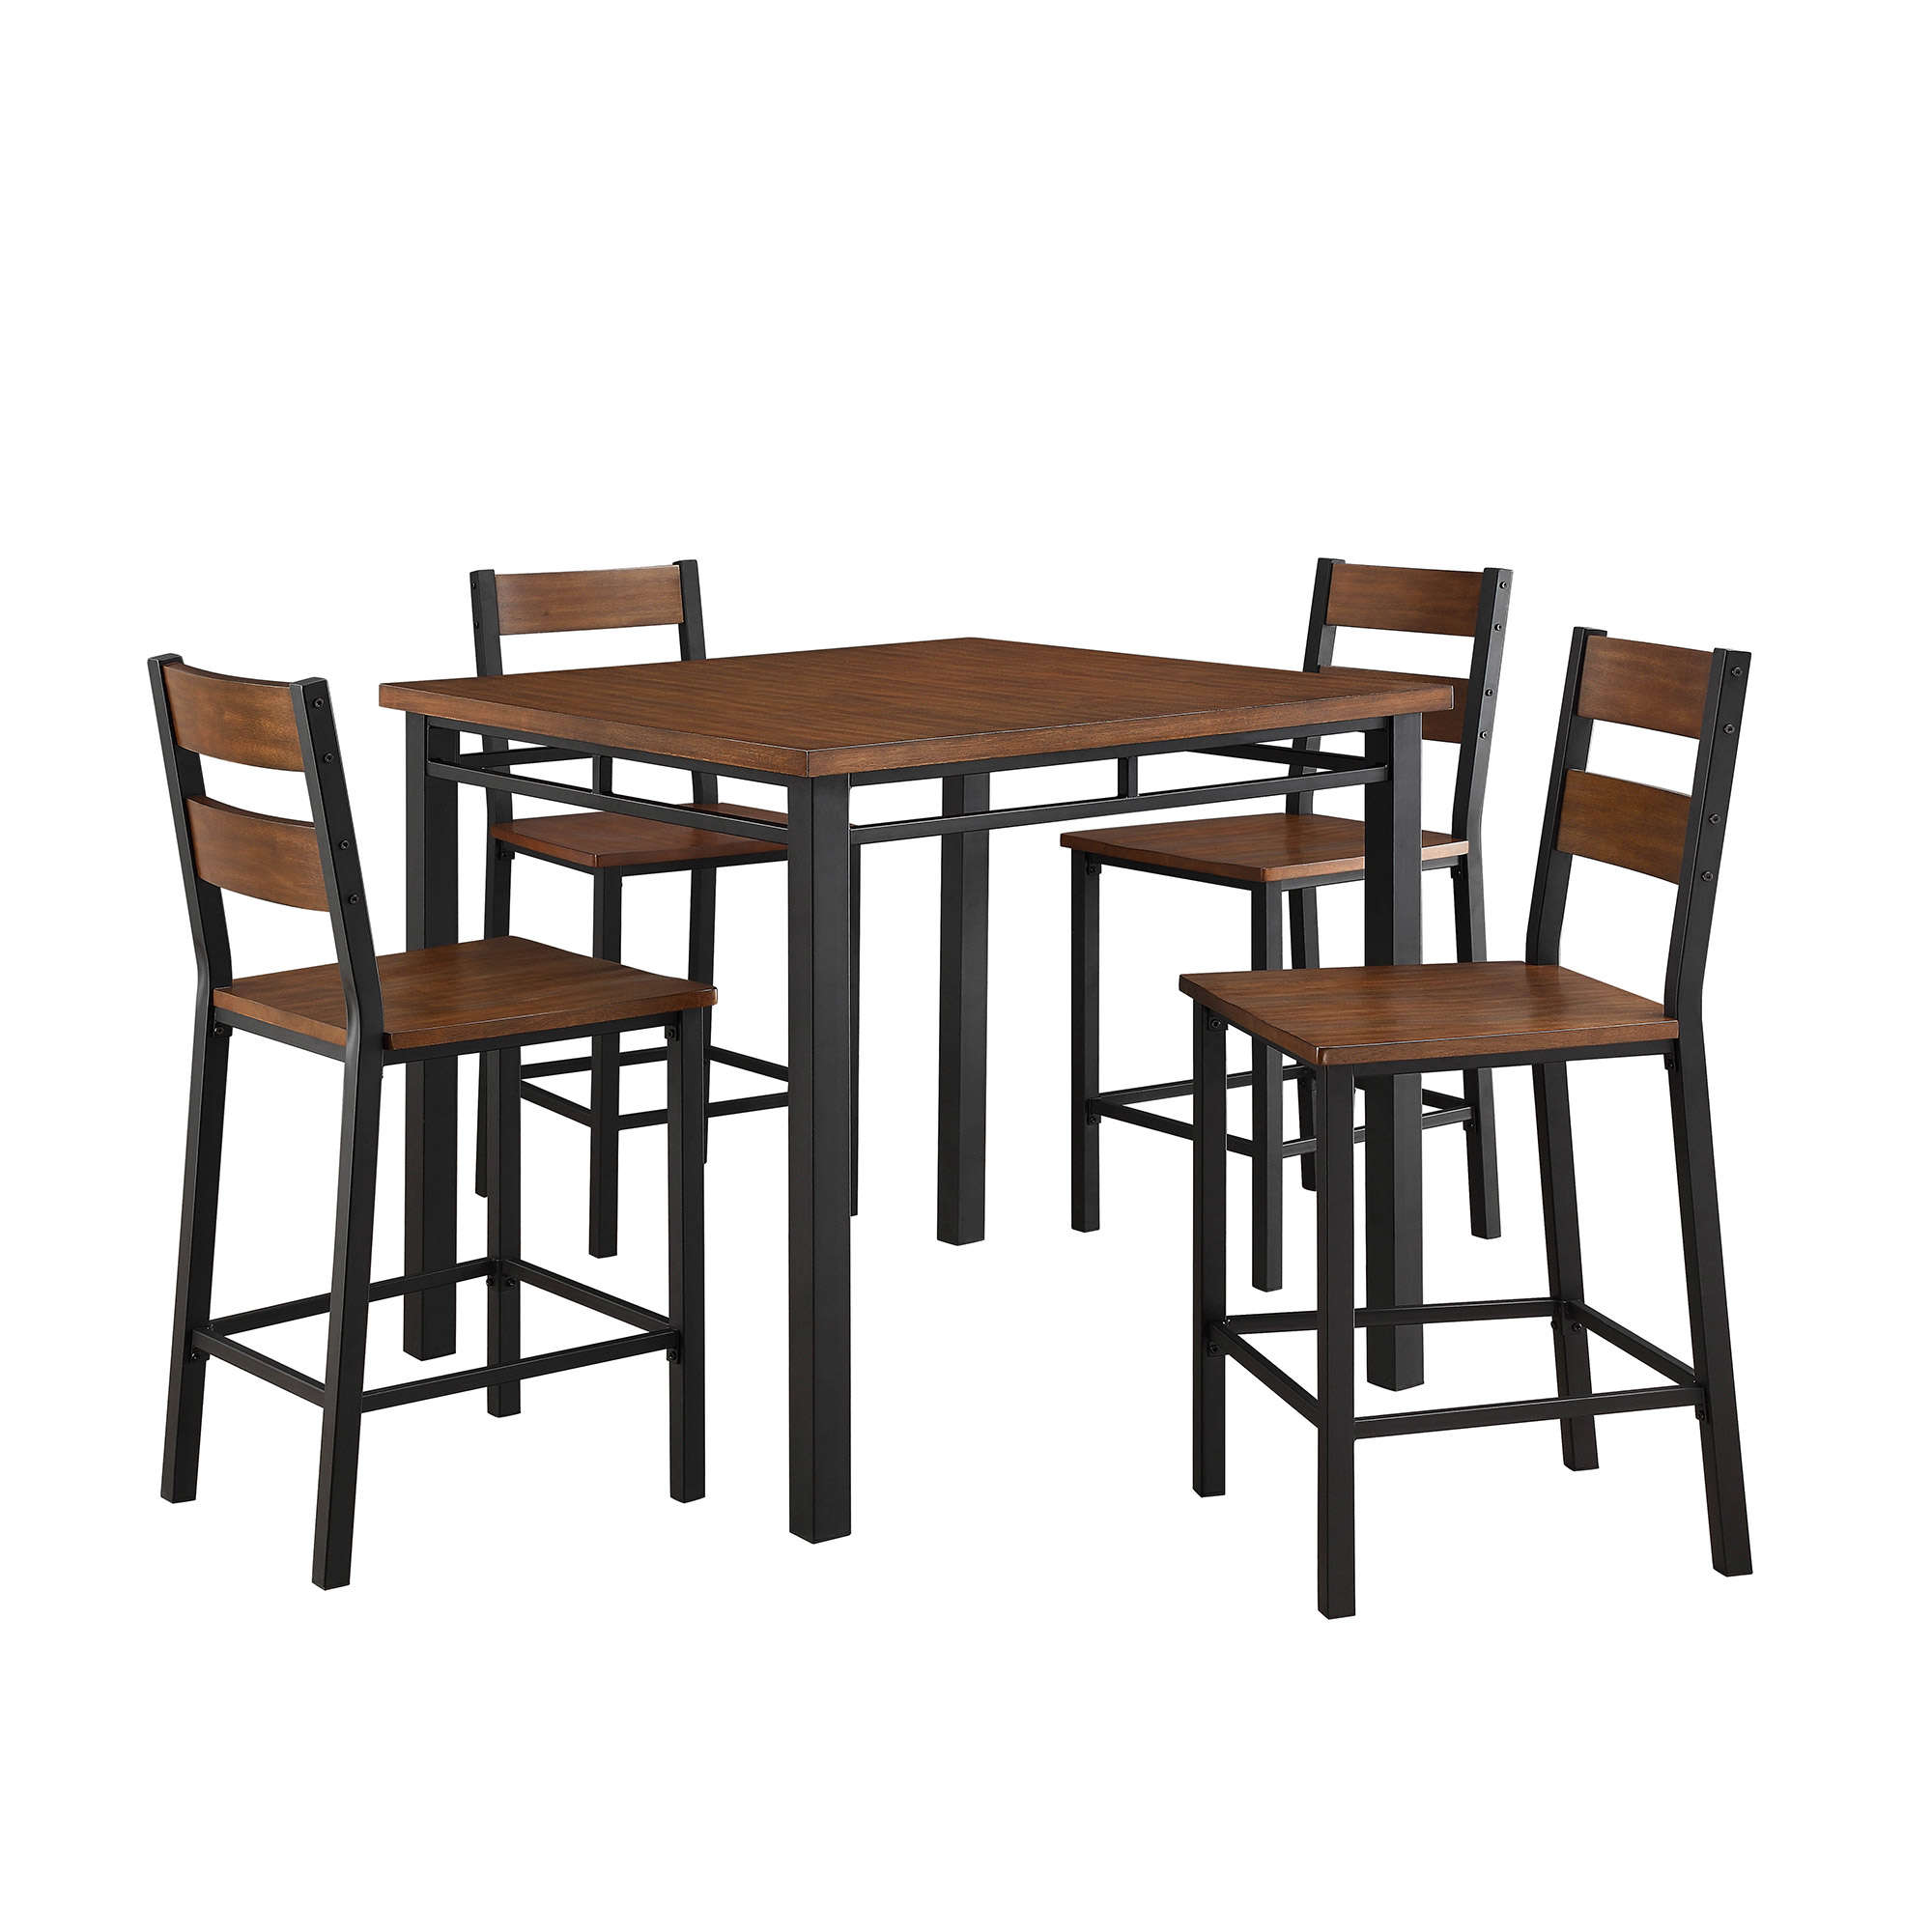 Attrayant Better Homes U0026 Gardens Mercer 5 Piece Counter Height Dining Set, Includes  Table And